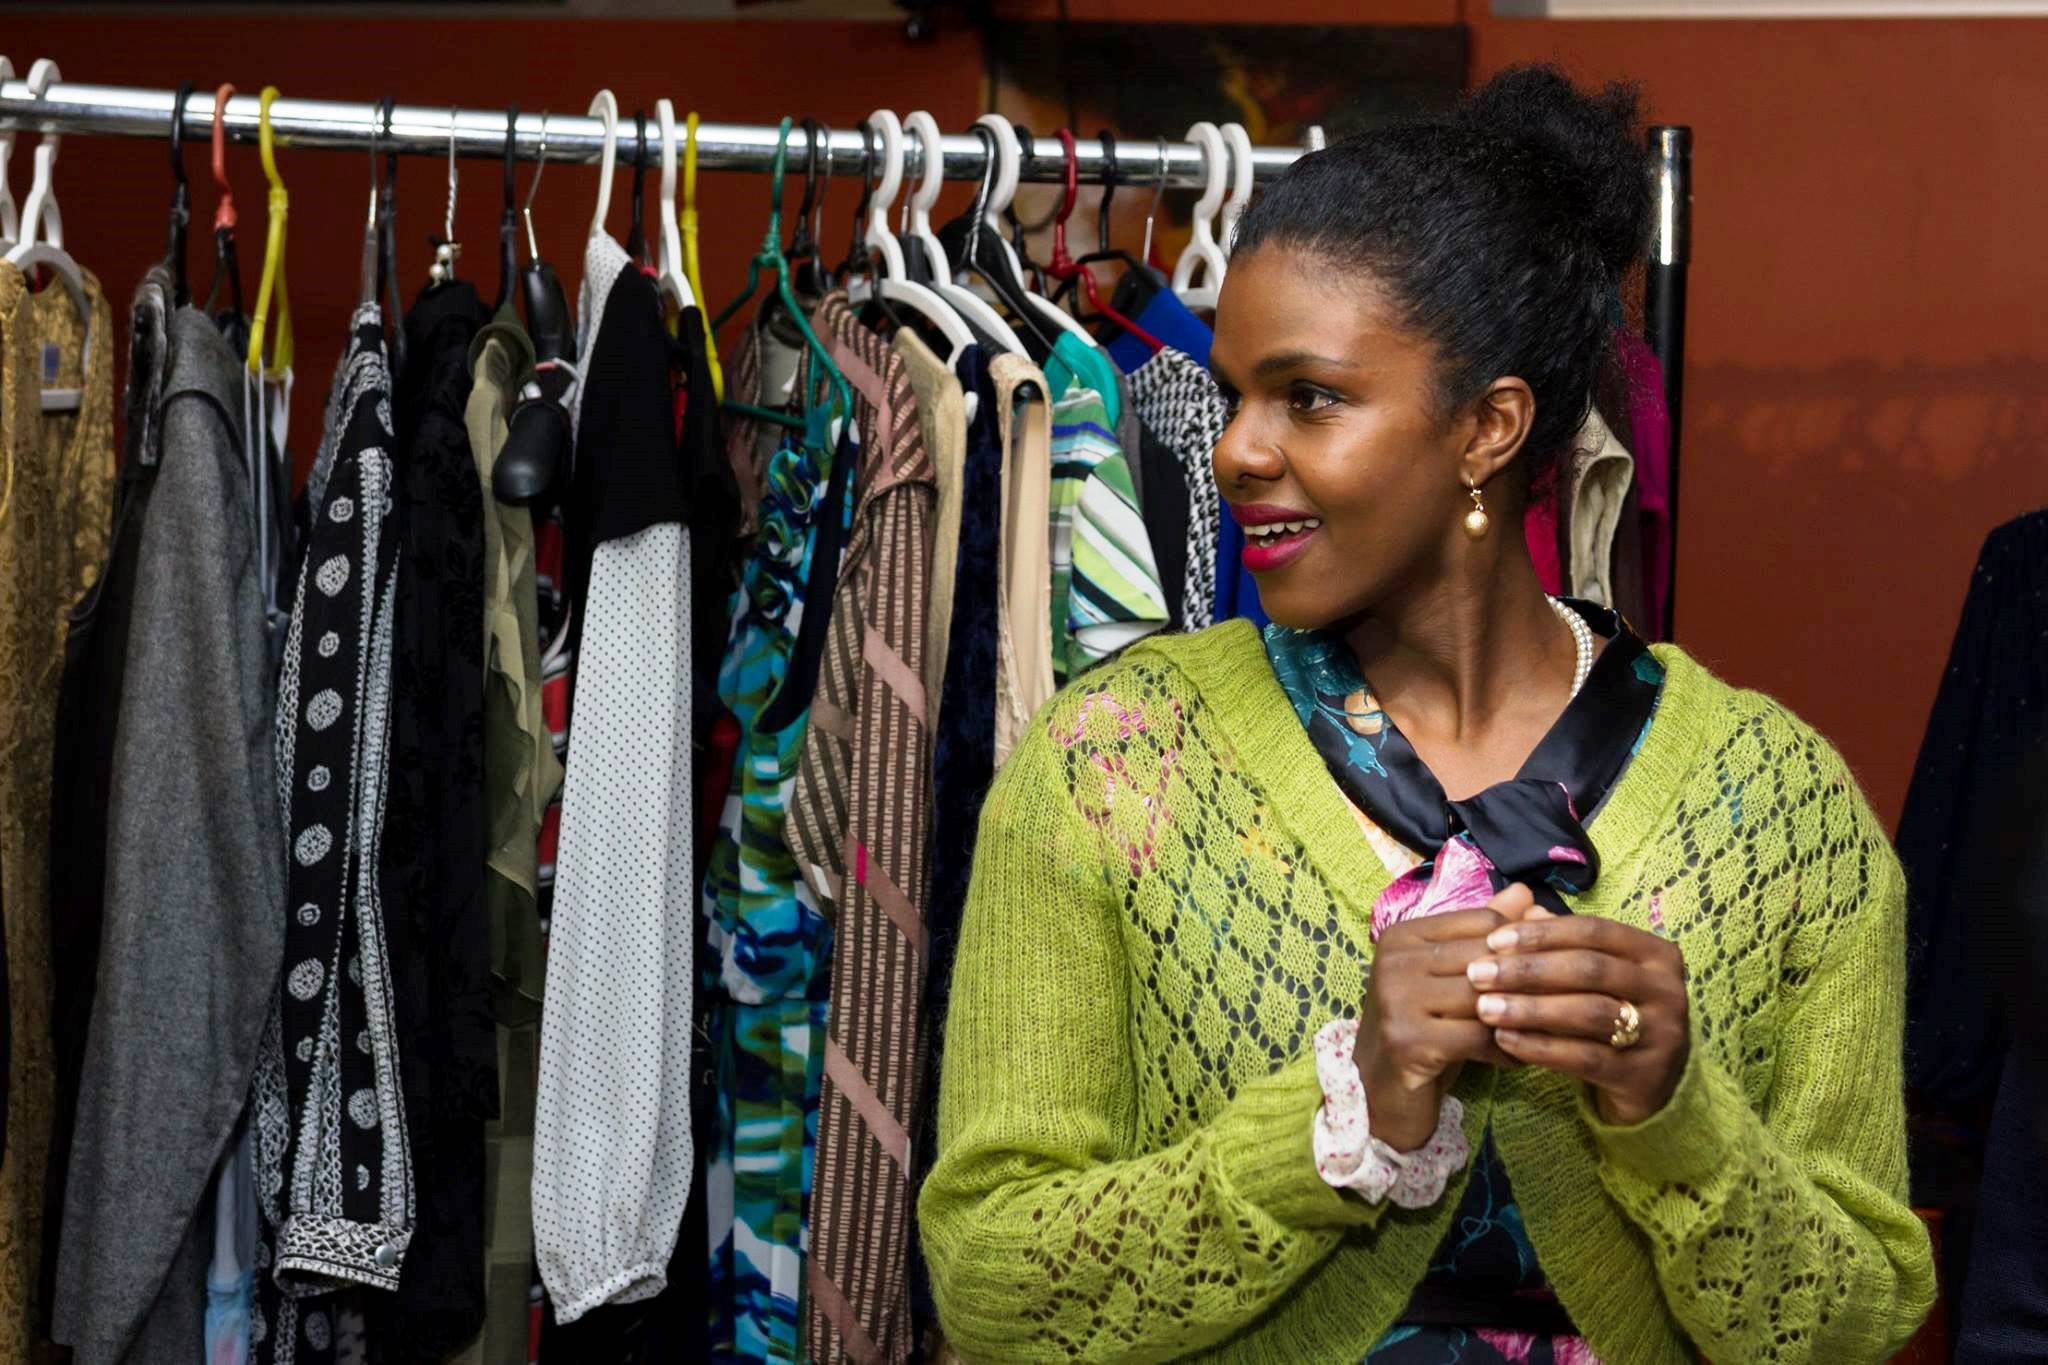 Ethiopian refugee shares her passion for dresses with Lithuanian women